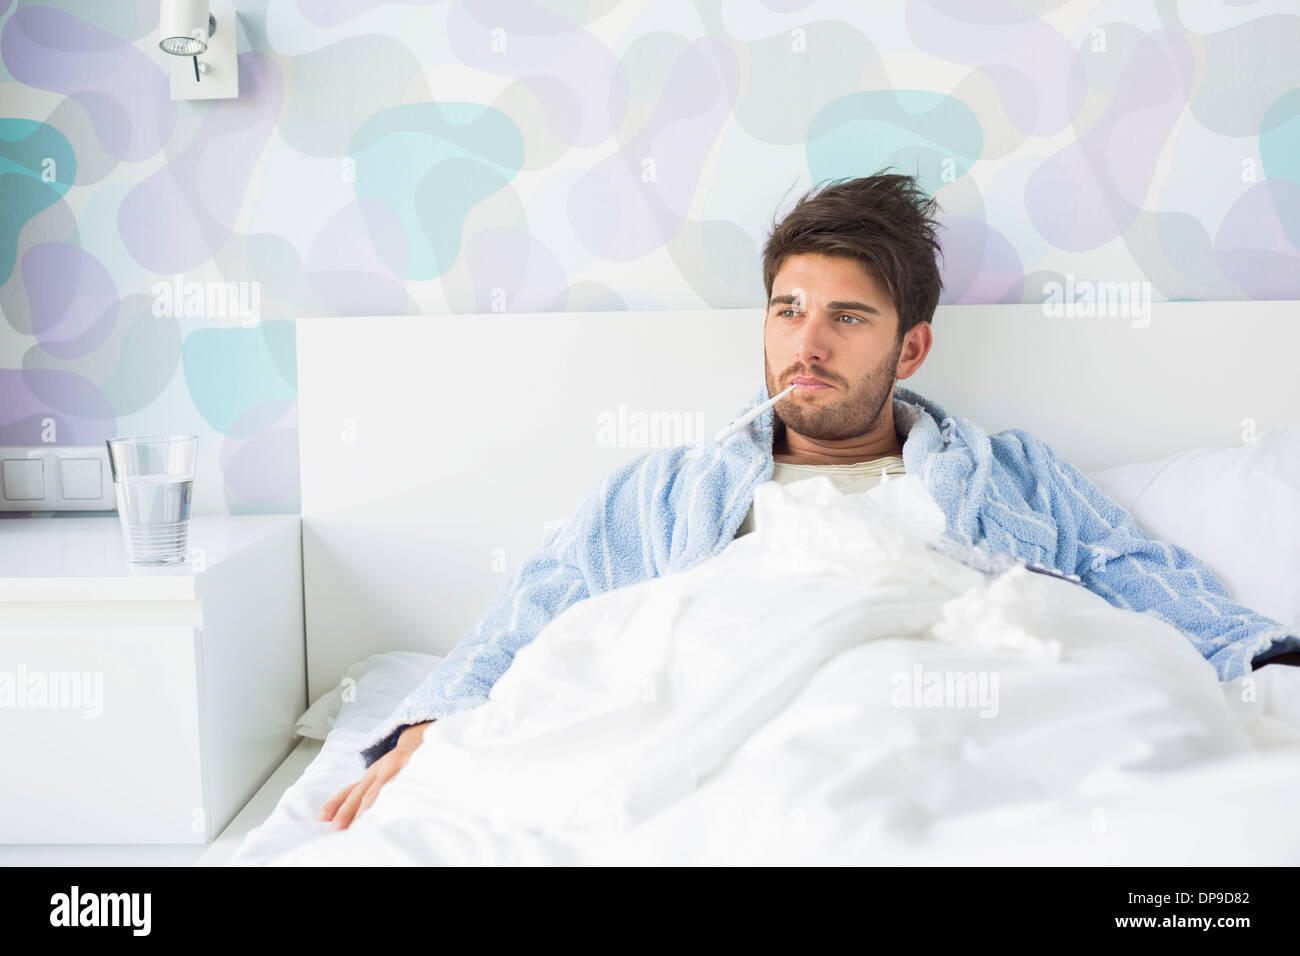 Sick man with thermometer in mouth reclining on bed at home - Stock Image